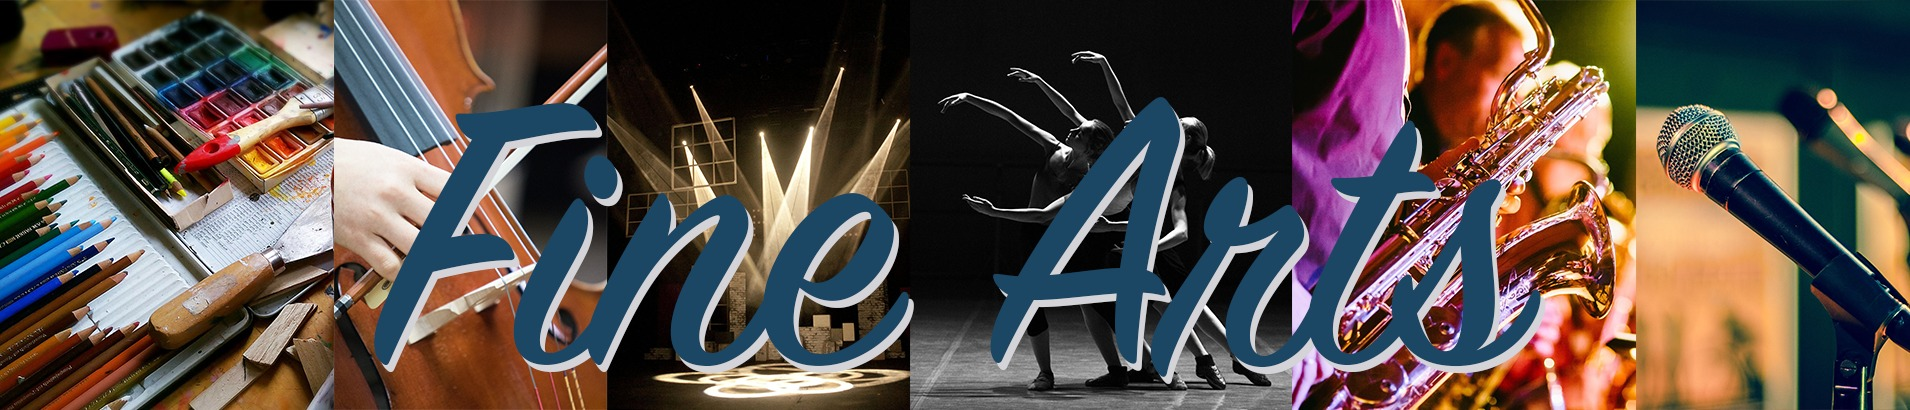 Fine Arts Web Banner, art supplies, dancers with spotlight, people playing instruments and a microphone on a stand.